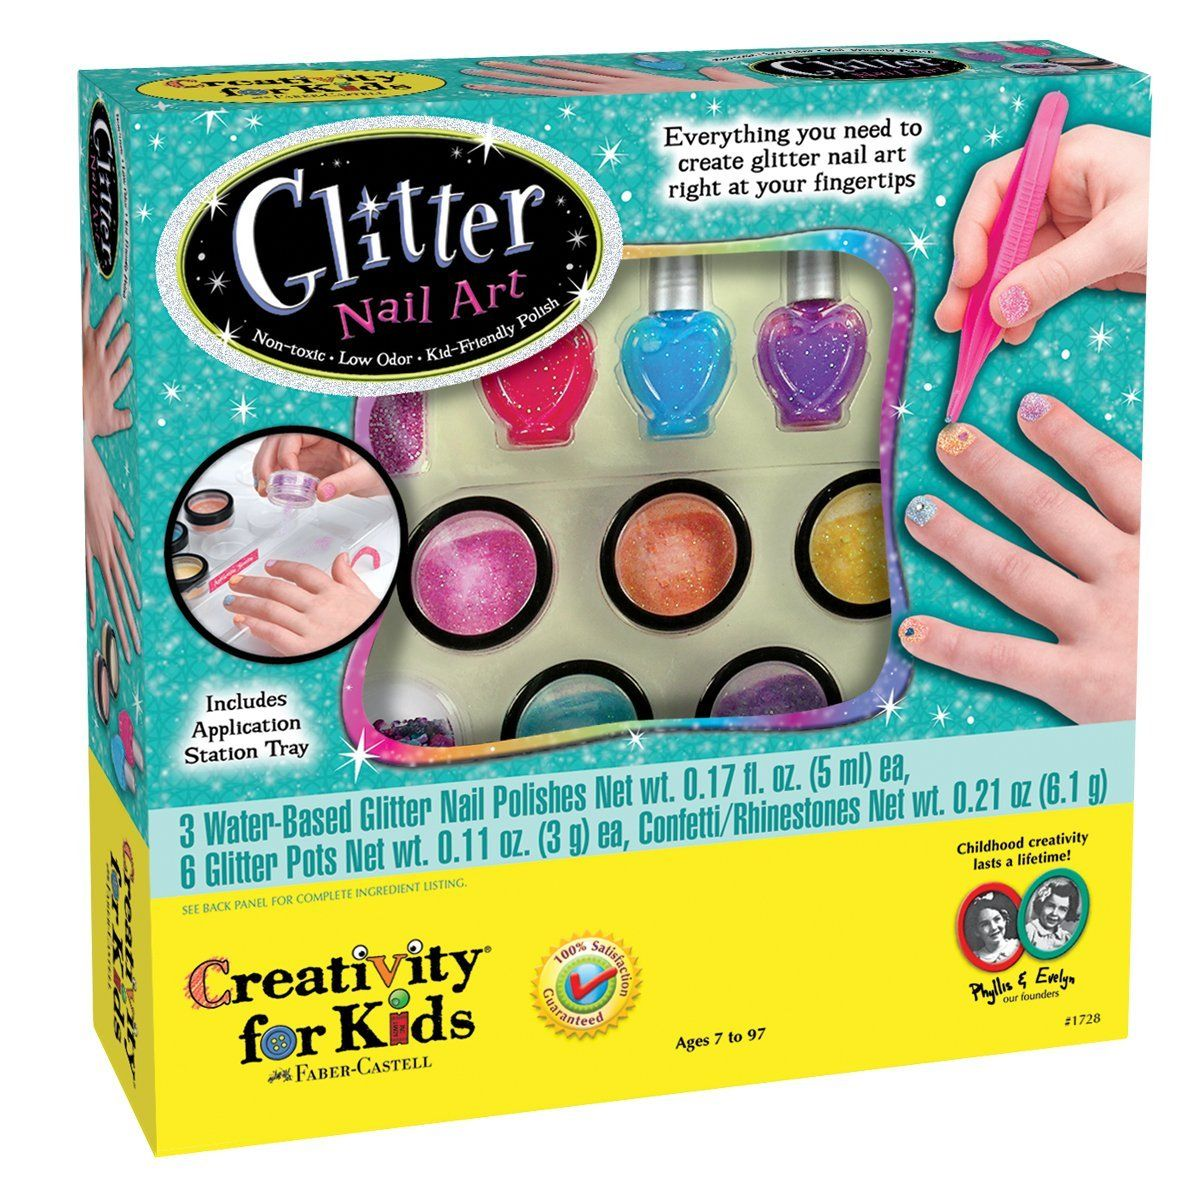 Best Gifts for 8 Year Old Girls in 2017 | Glitter nails, Nail art ...